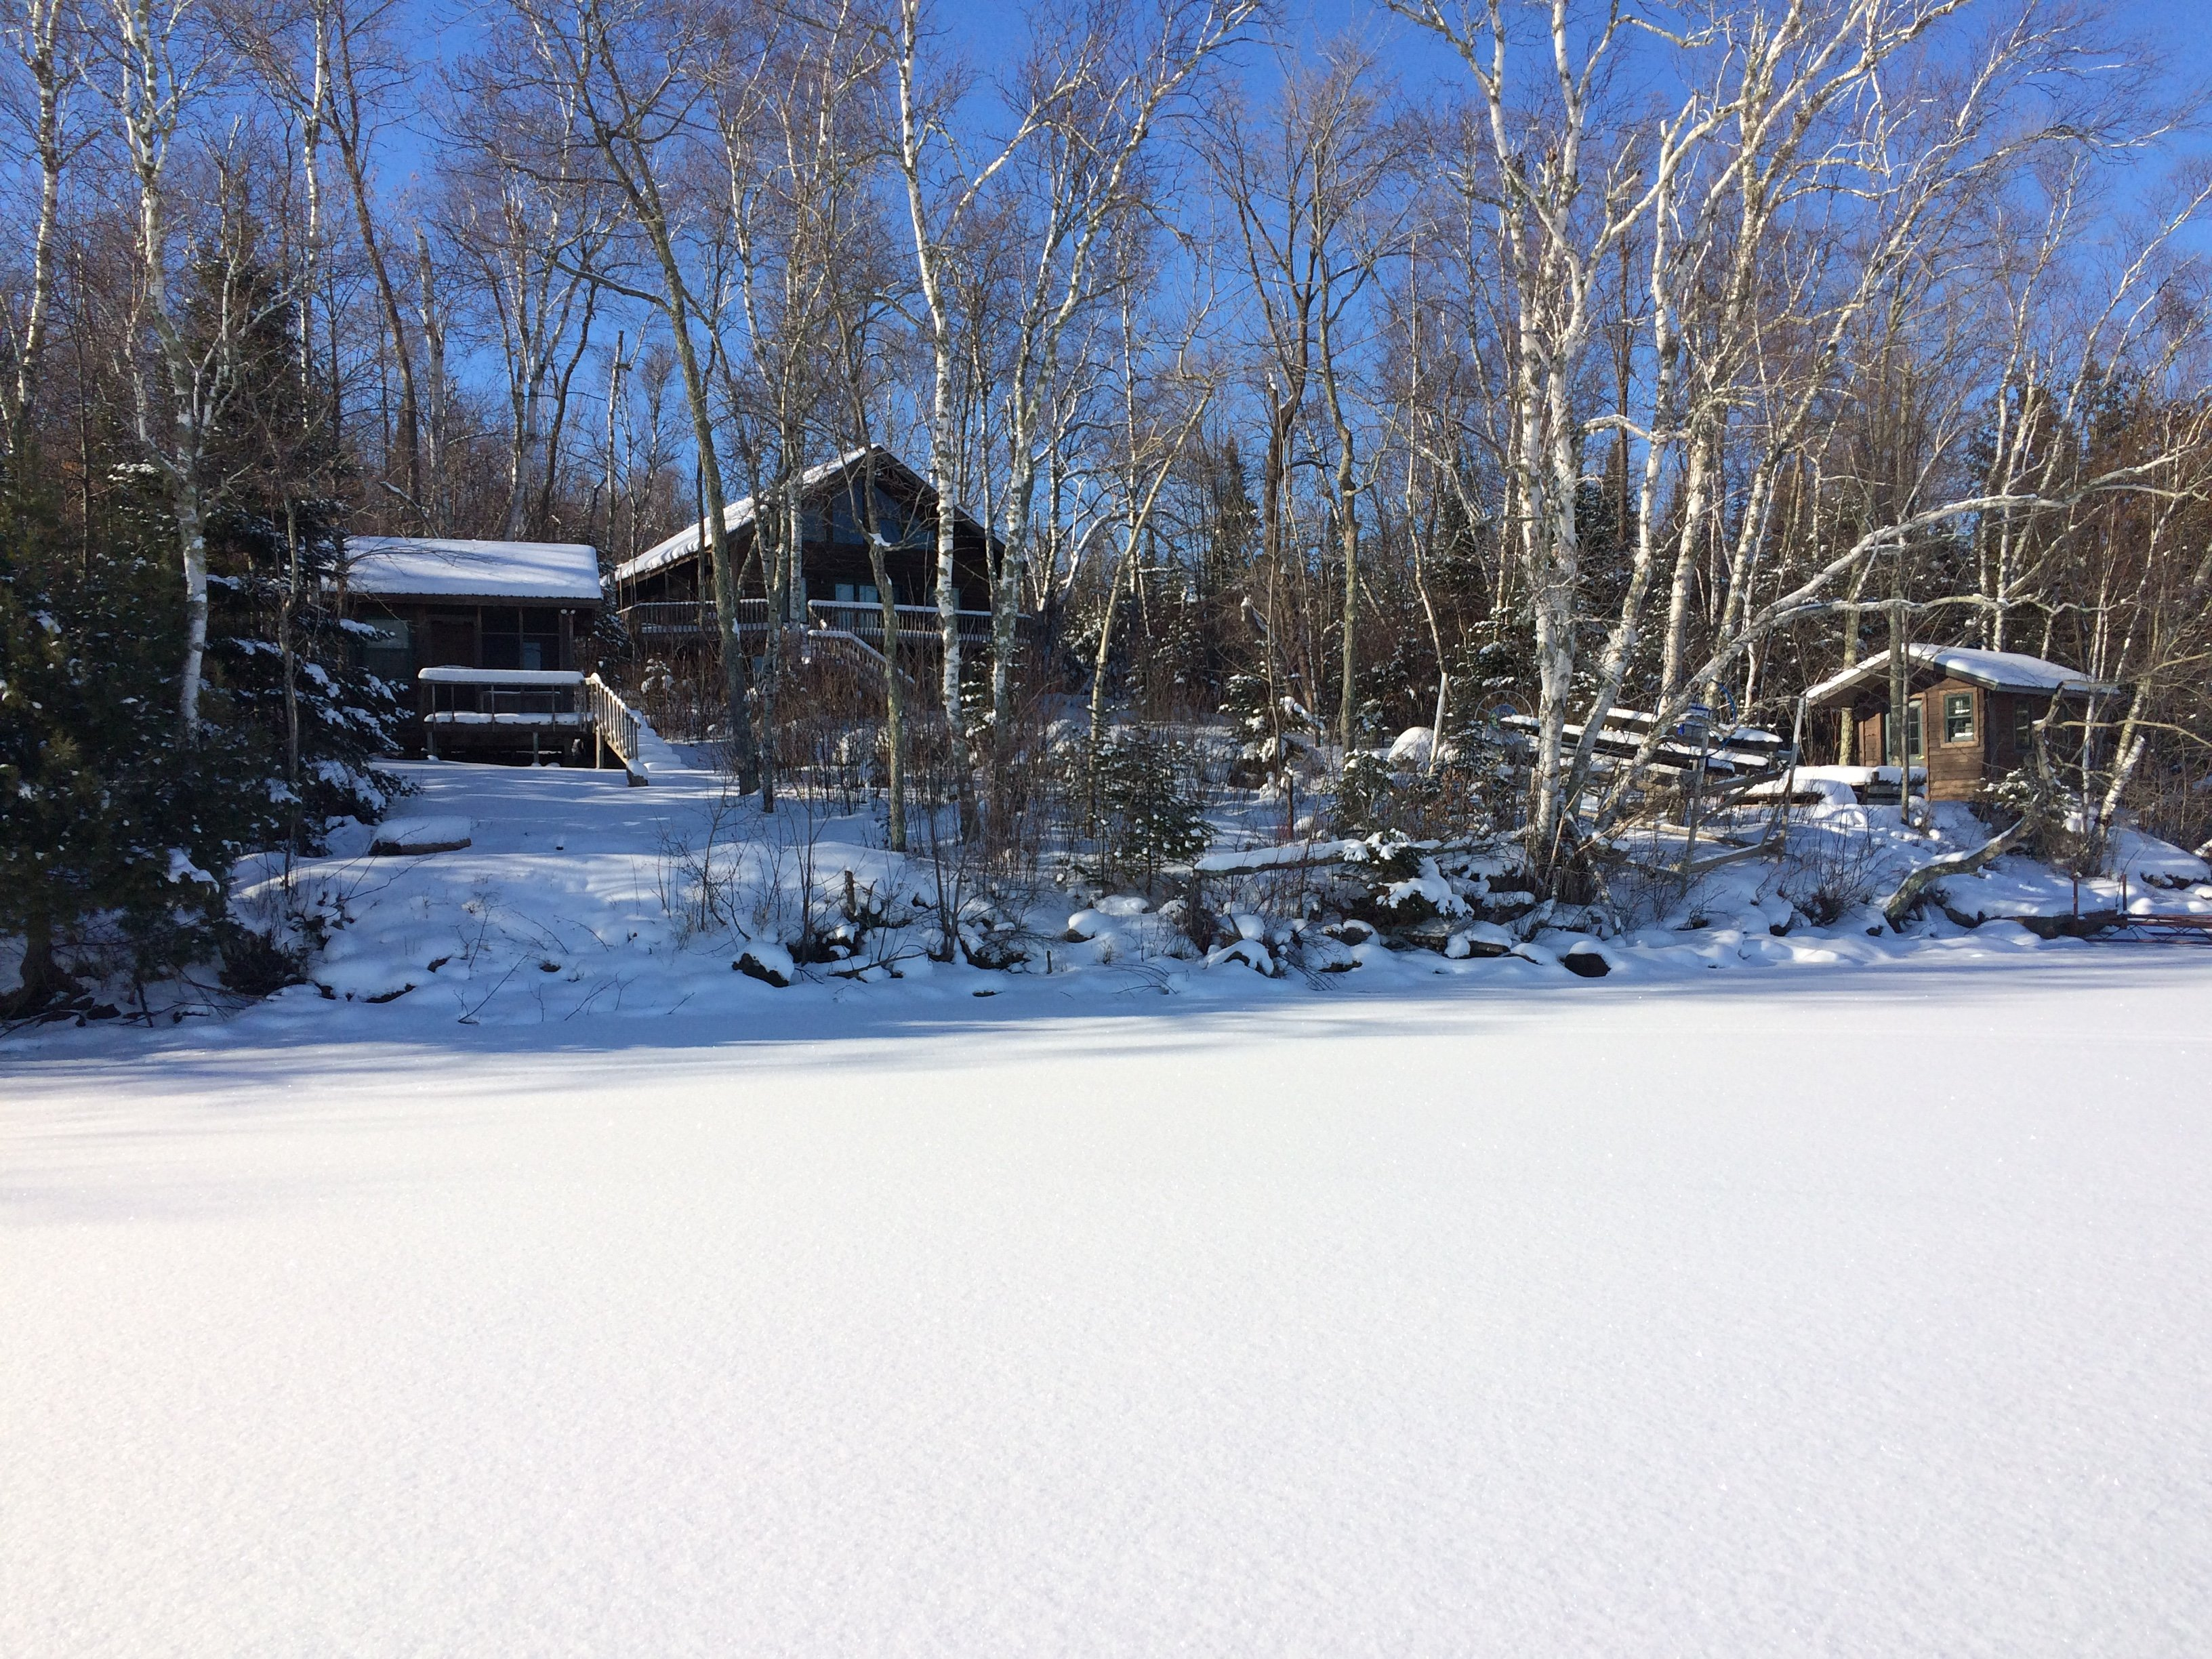 Lake Vermilion Cabin on a Winter afternoon